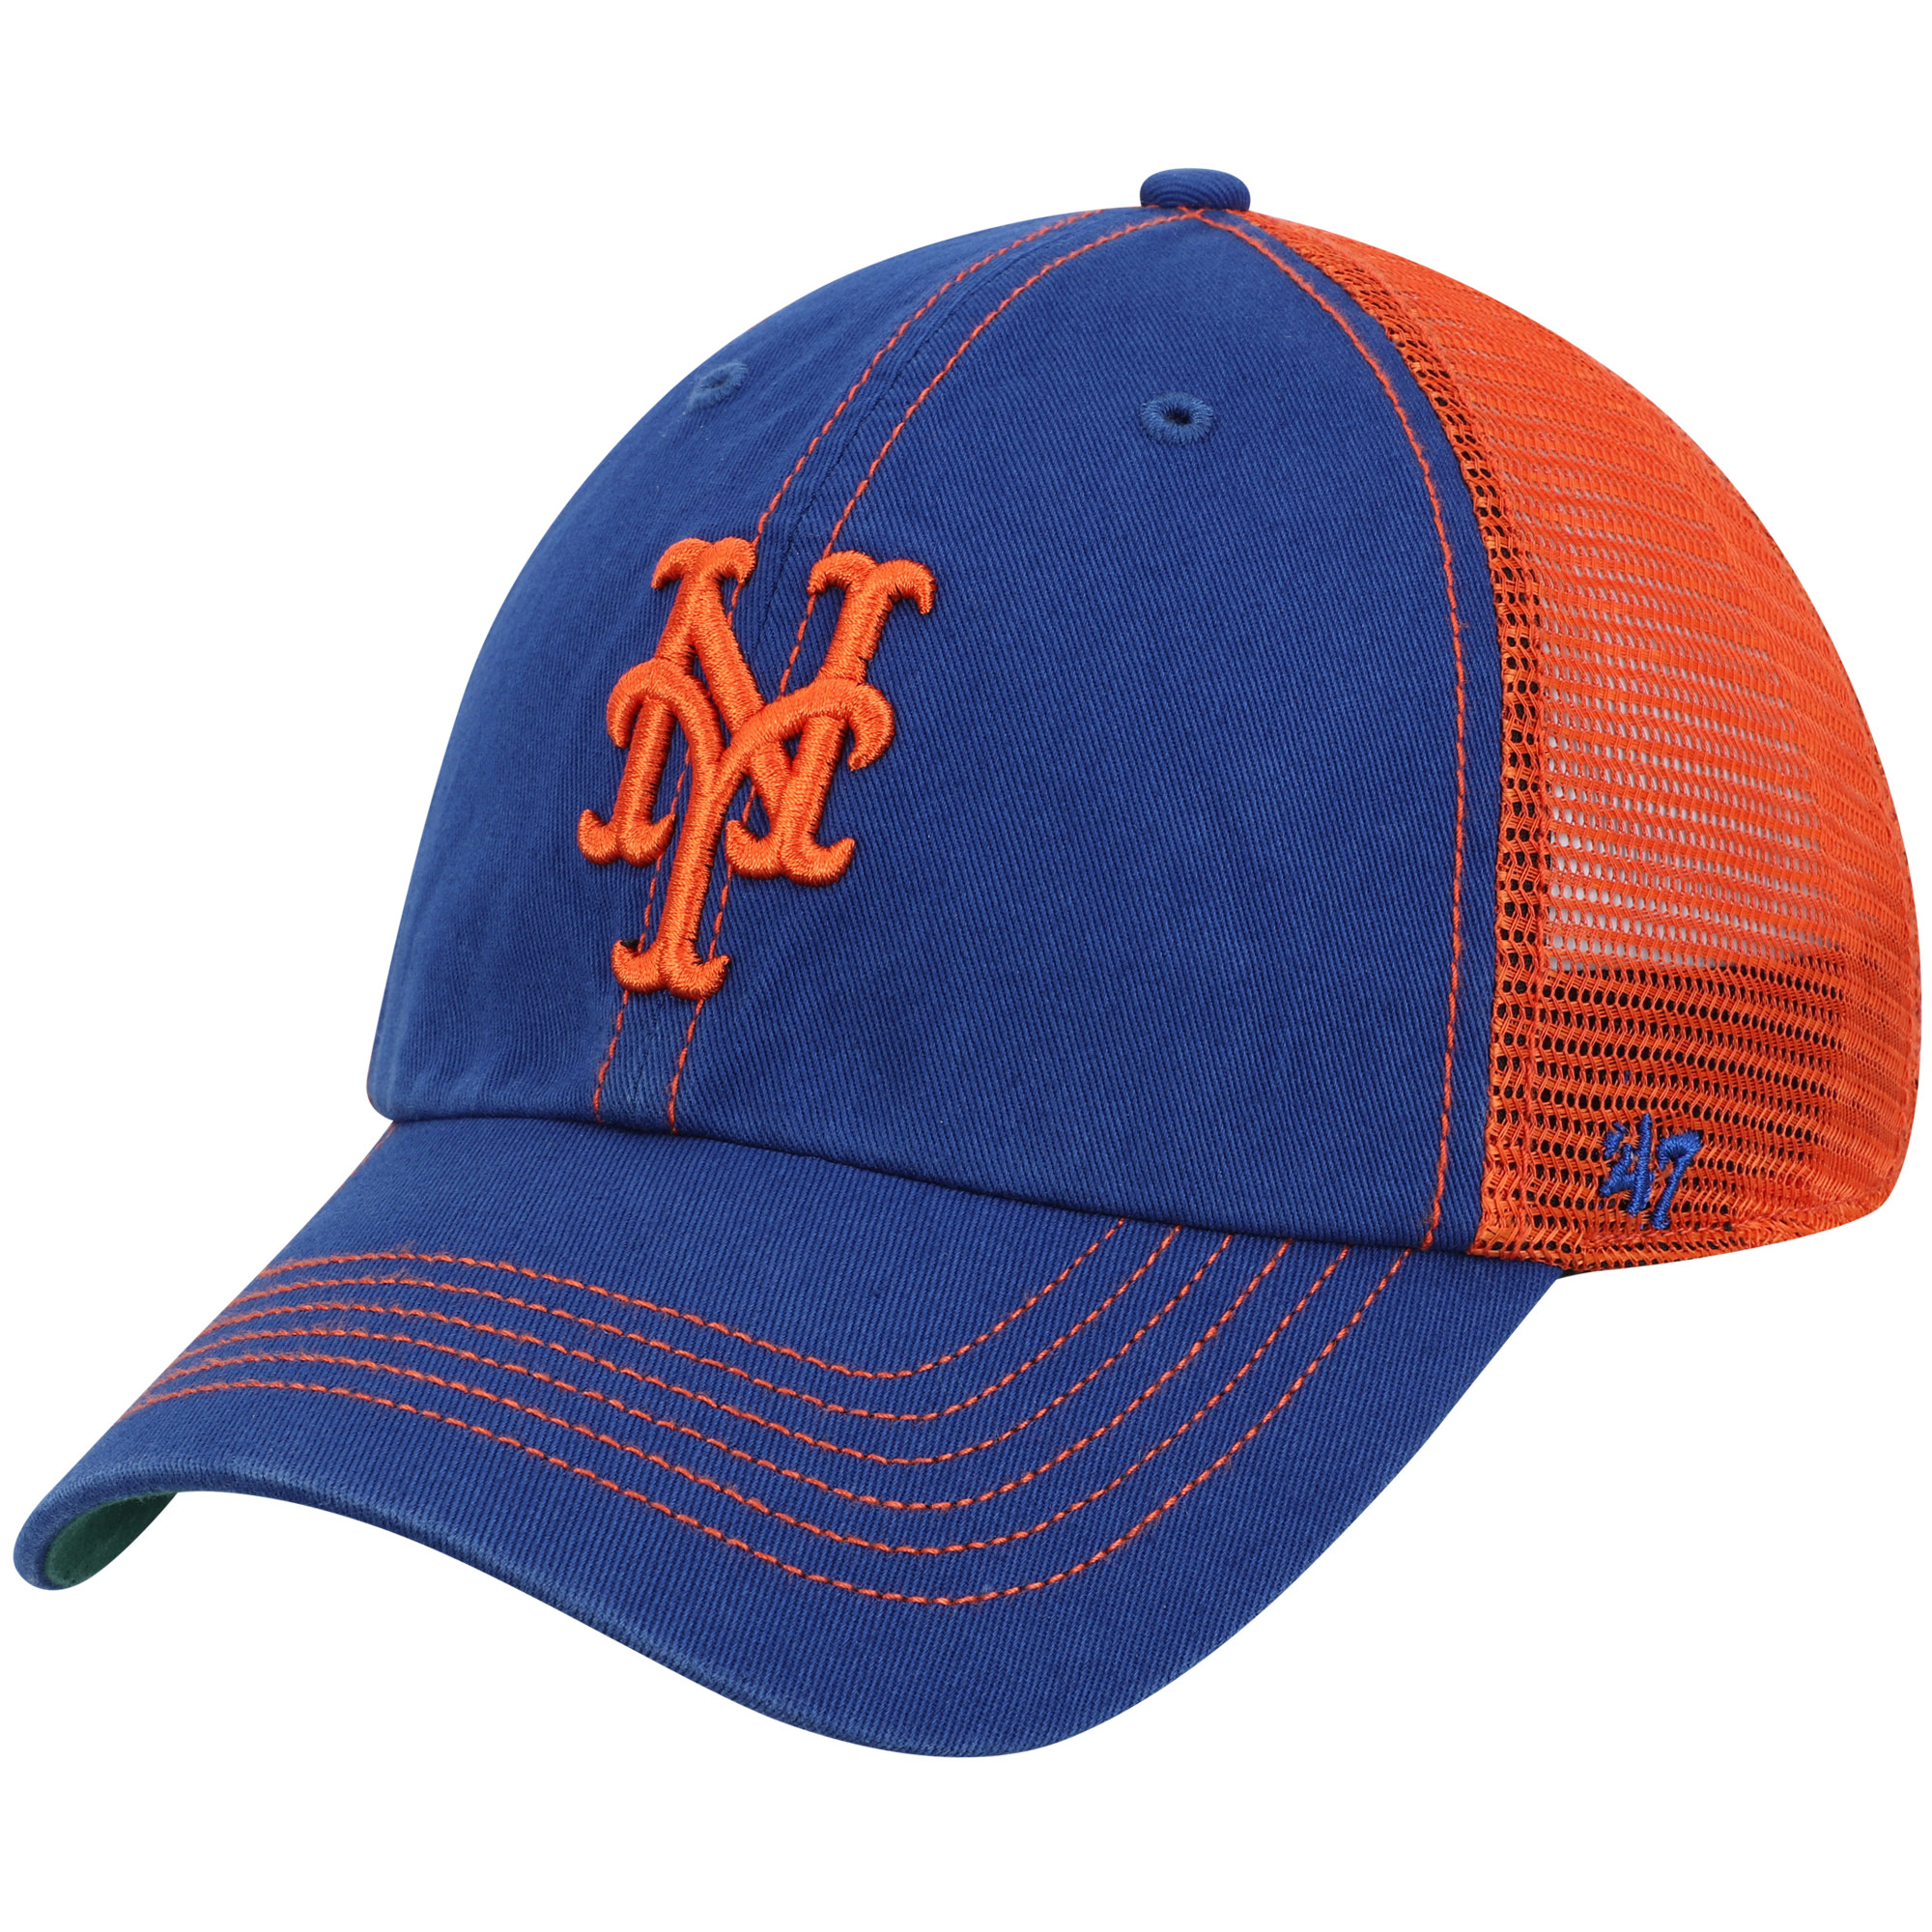 New York Mets '47 Trawler Clean Up Trucker Hat - Royal - OSFA